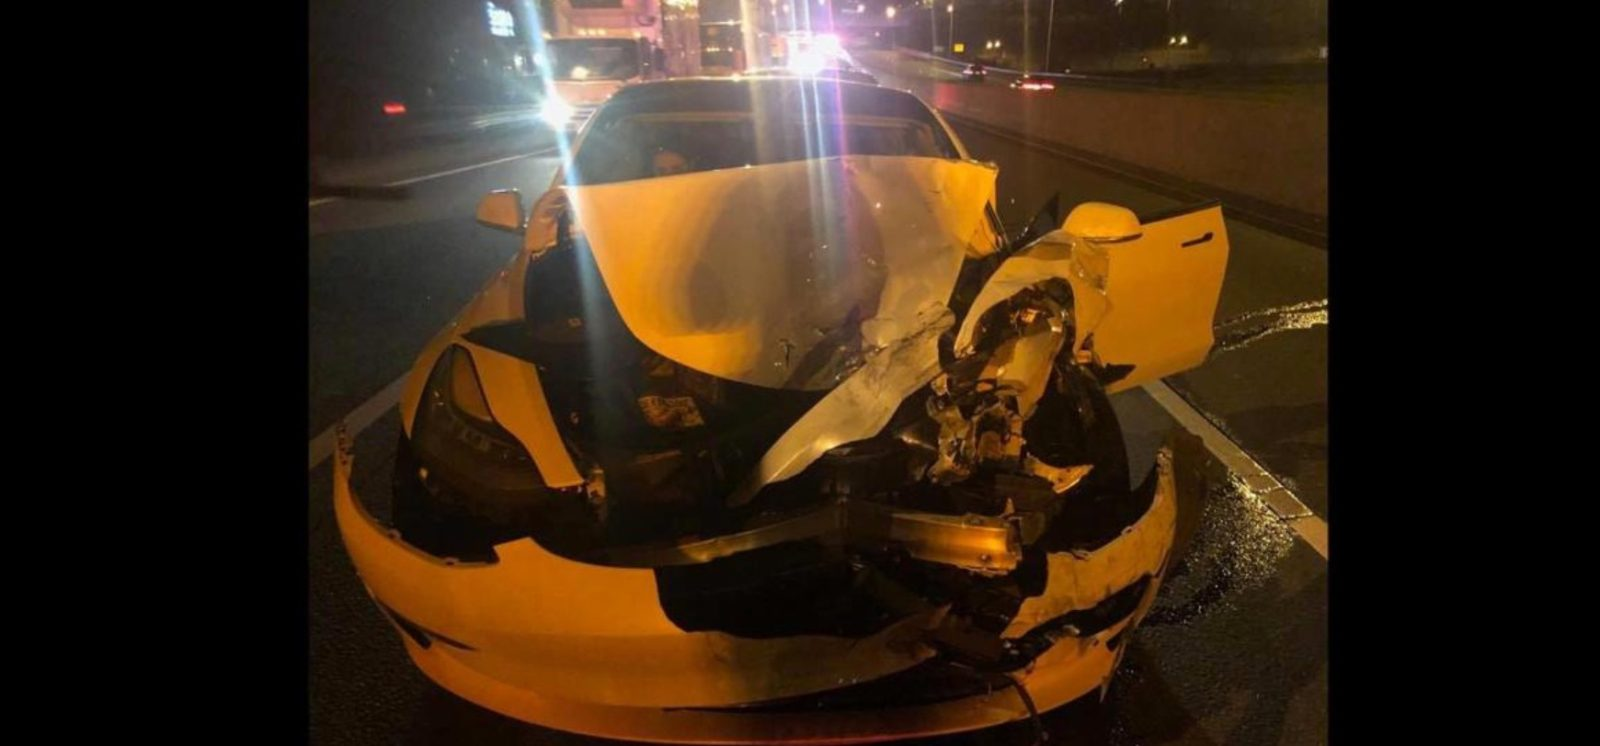 Tesla driver cited with 'reckless driving' after crashing into police car while on Autopilot